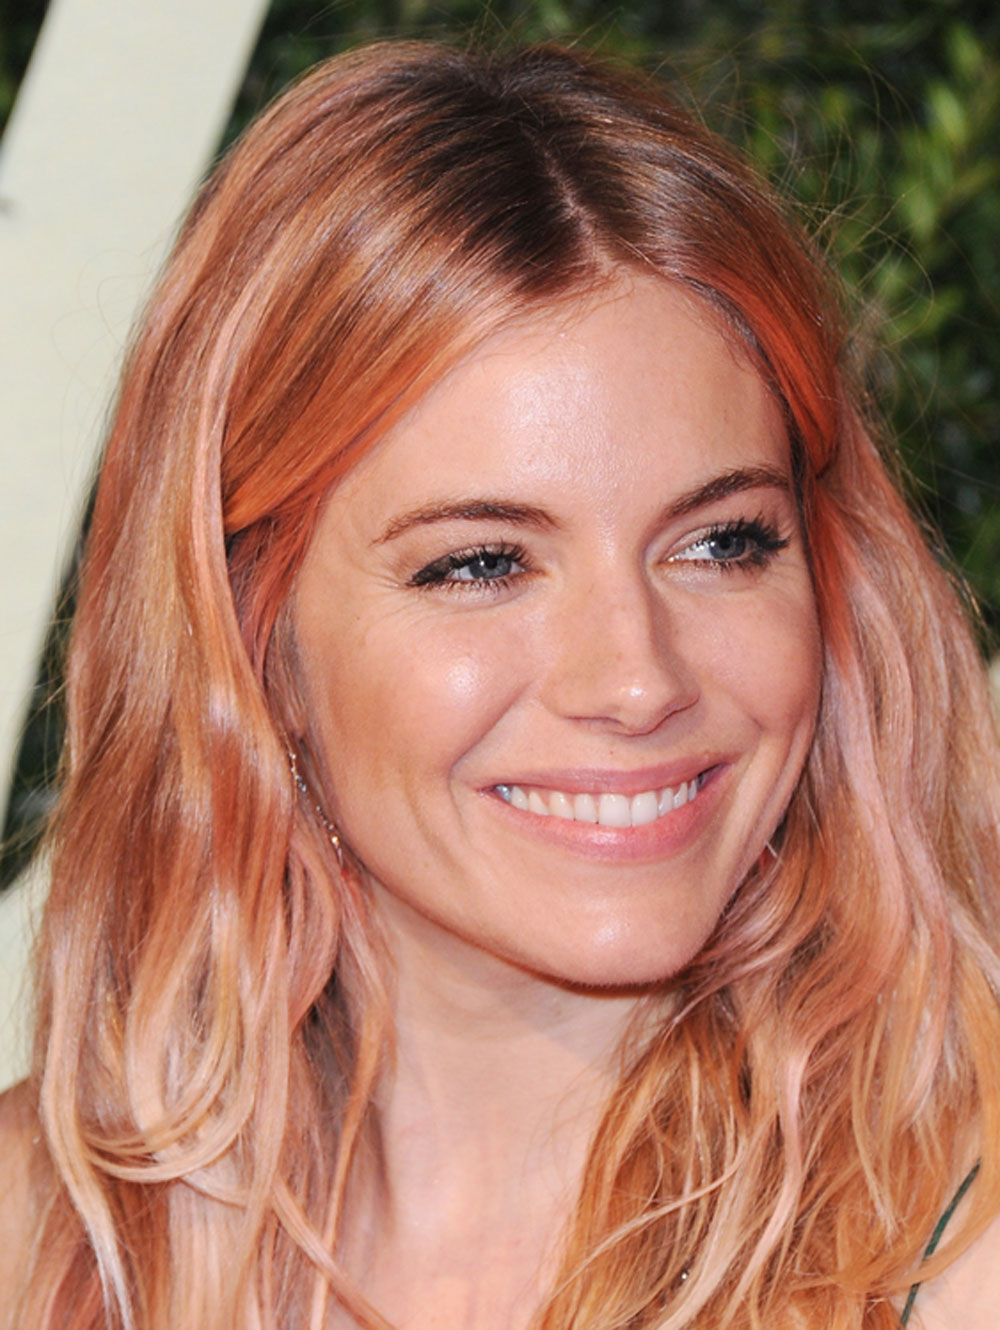 Sienna Miller with candy floss hair color